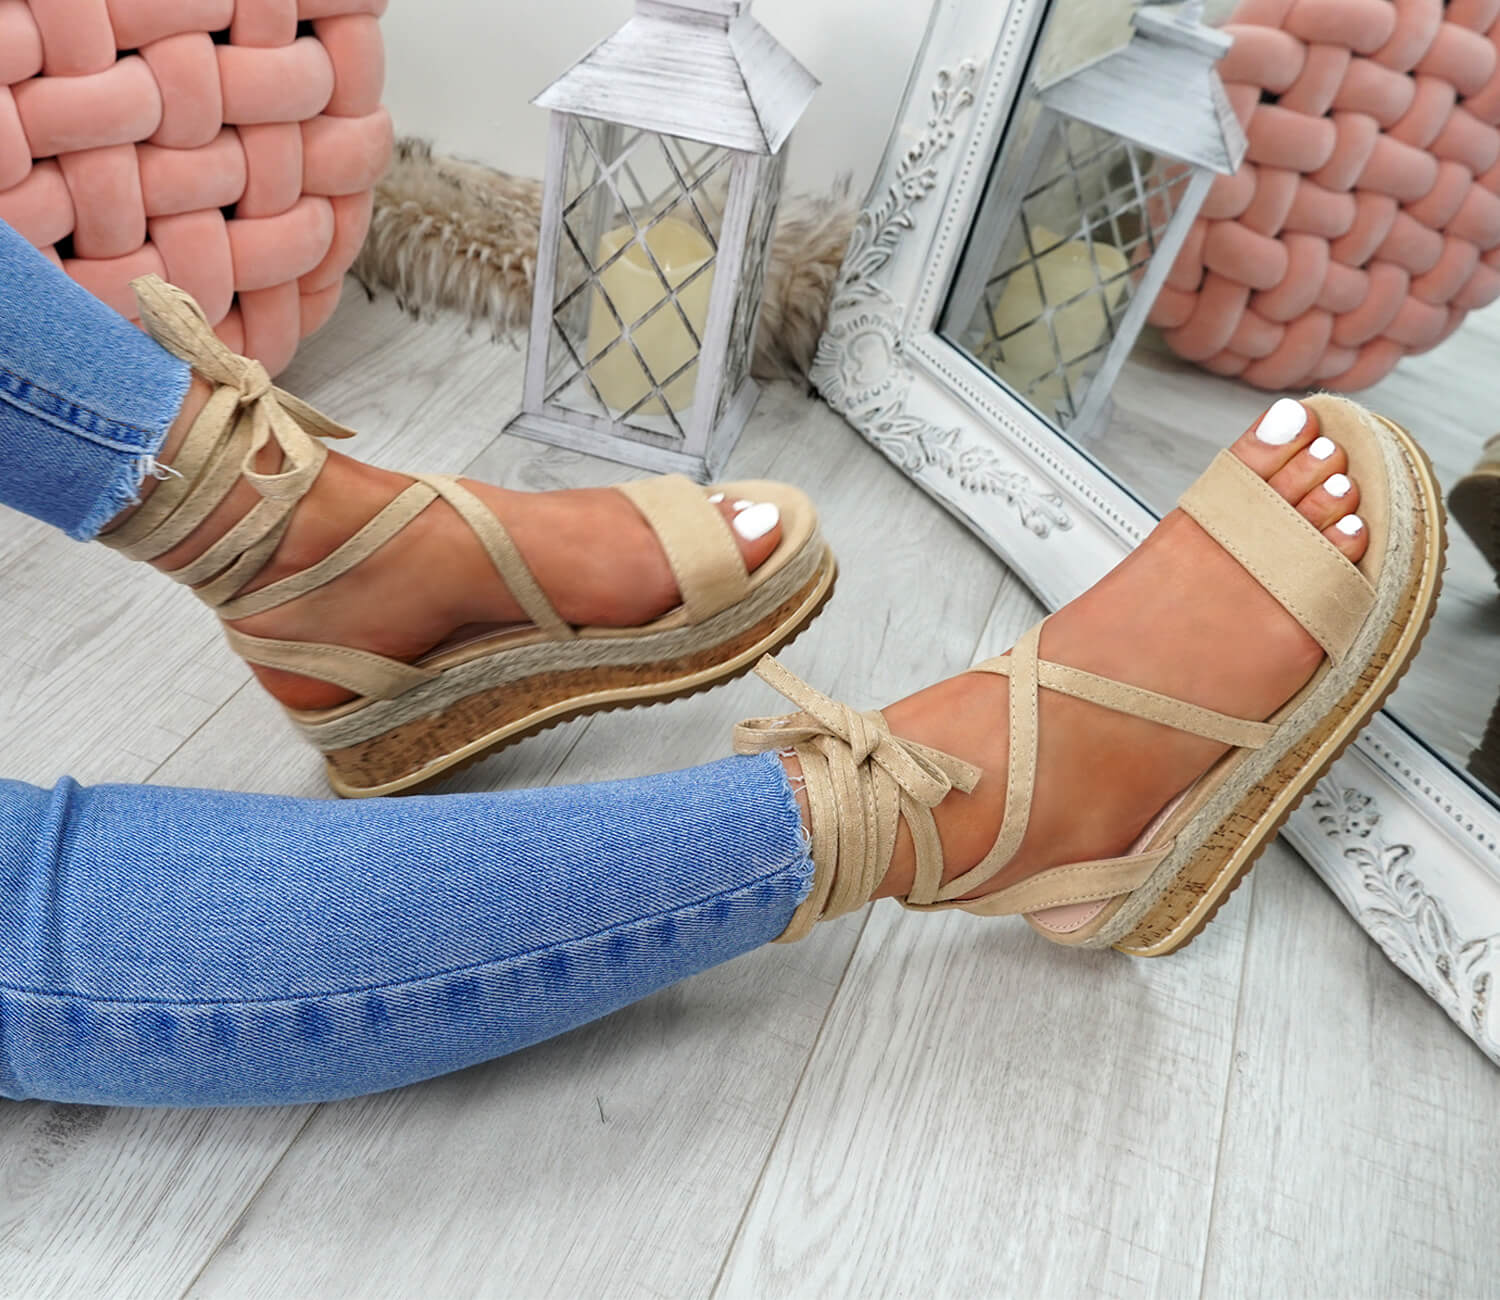 WOMENS-LADIES-ANKLE-WRAP-ESPADRILLE-FLATFORM-SANDALS-HEEL-SUMMER-SHOES-SIZE thumbnail 8